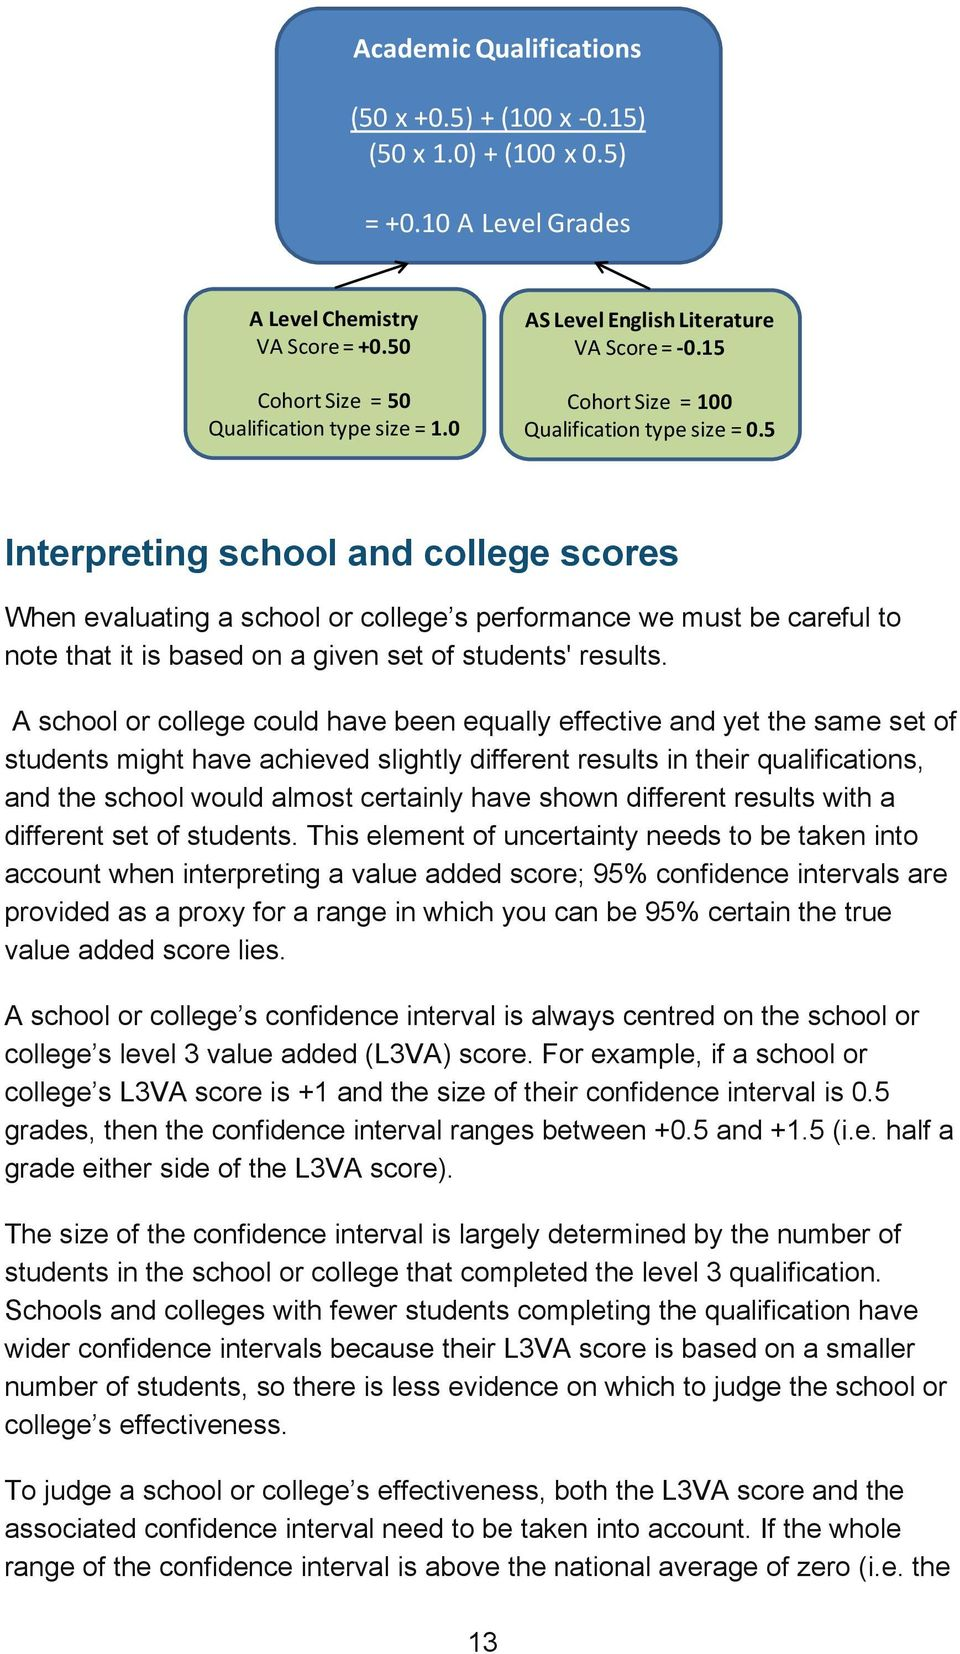 5 Interpreting school and college scores When evaluating a school or college s performance we must be careful to note that it is based on a given set of students' results.